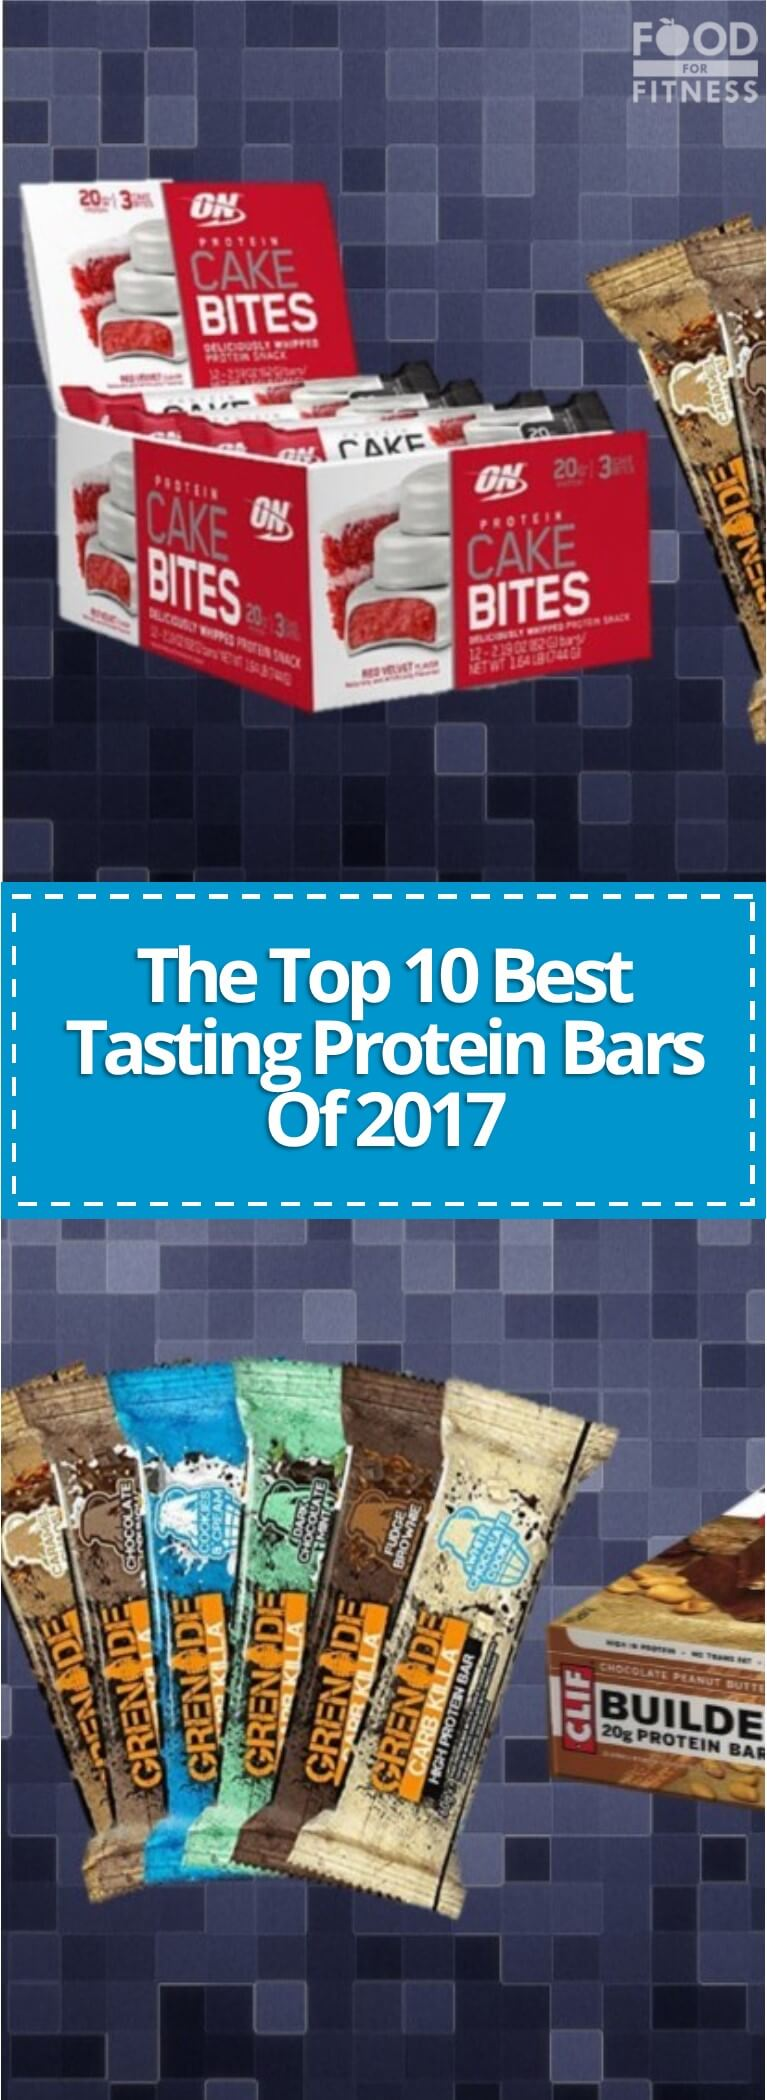 The Top 10 Best Tasting Protein Bars Of 2017